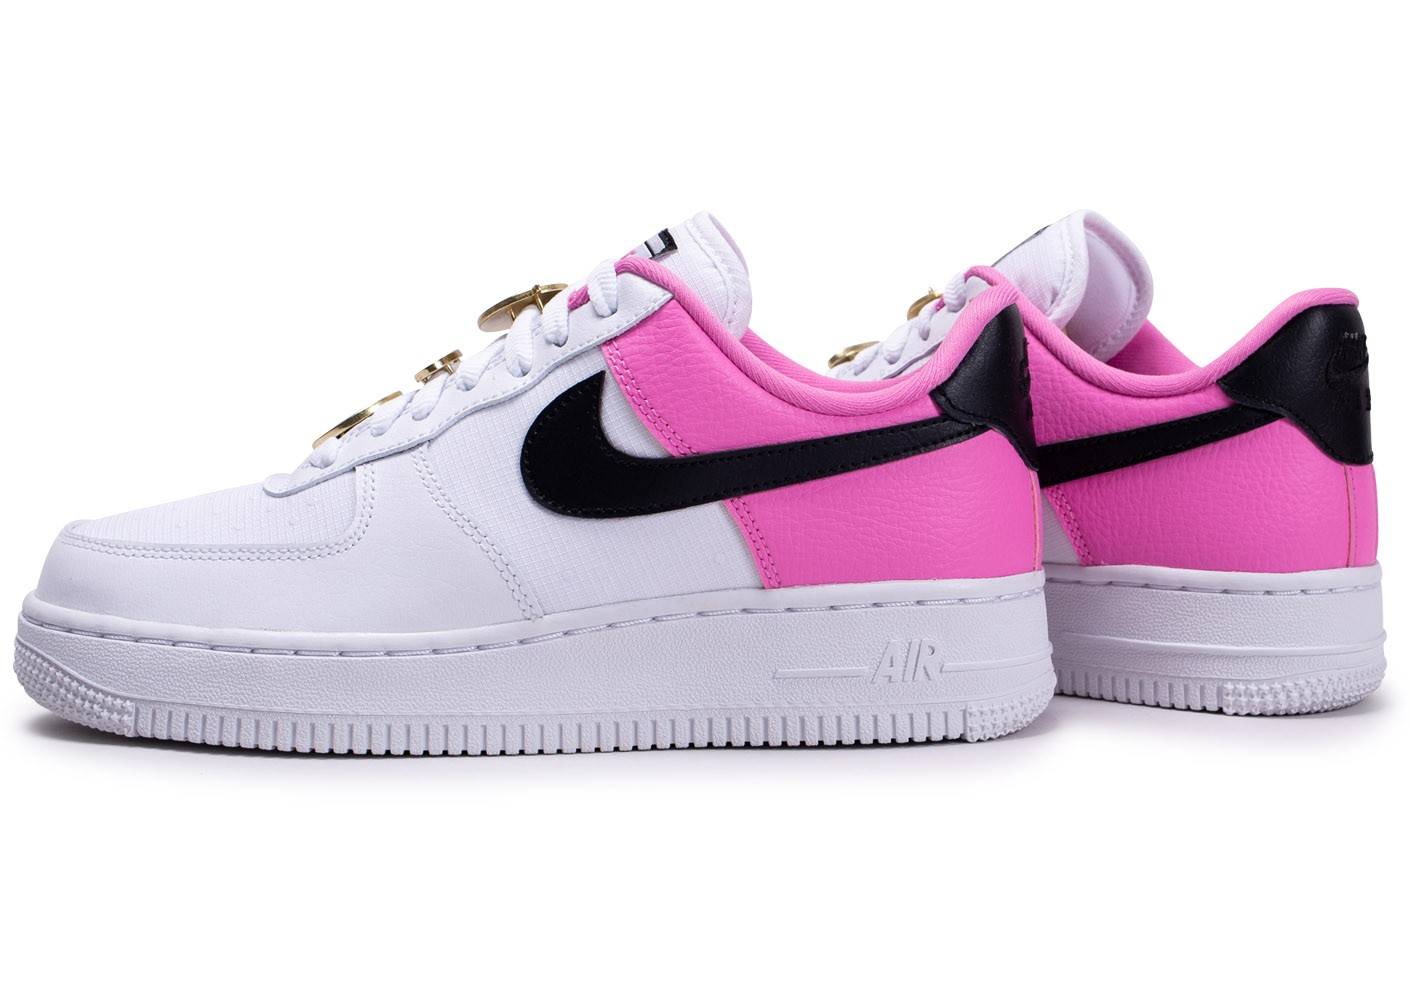 Nike Air Force 1'07 blanc rose femme - Chaussures Baskets ...